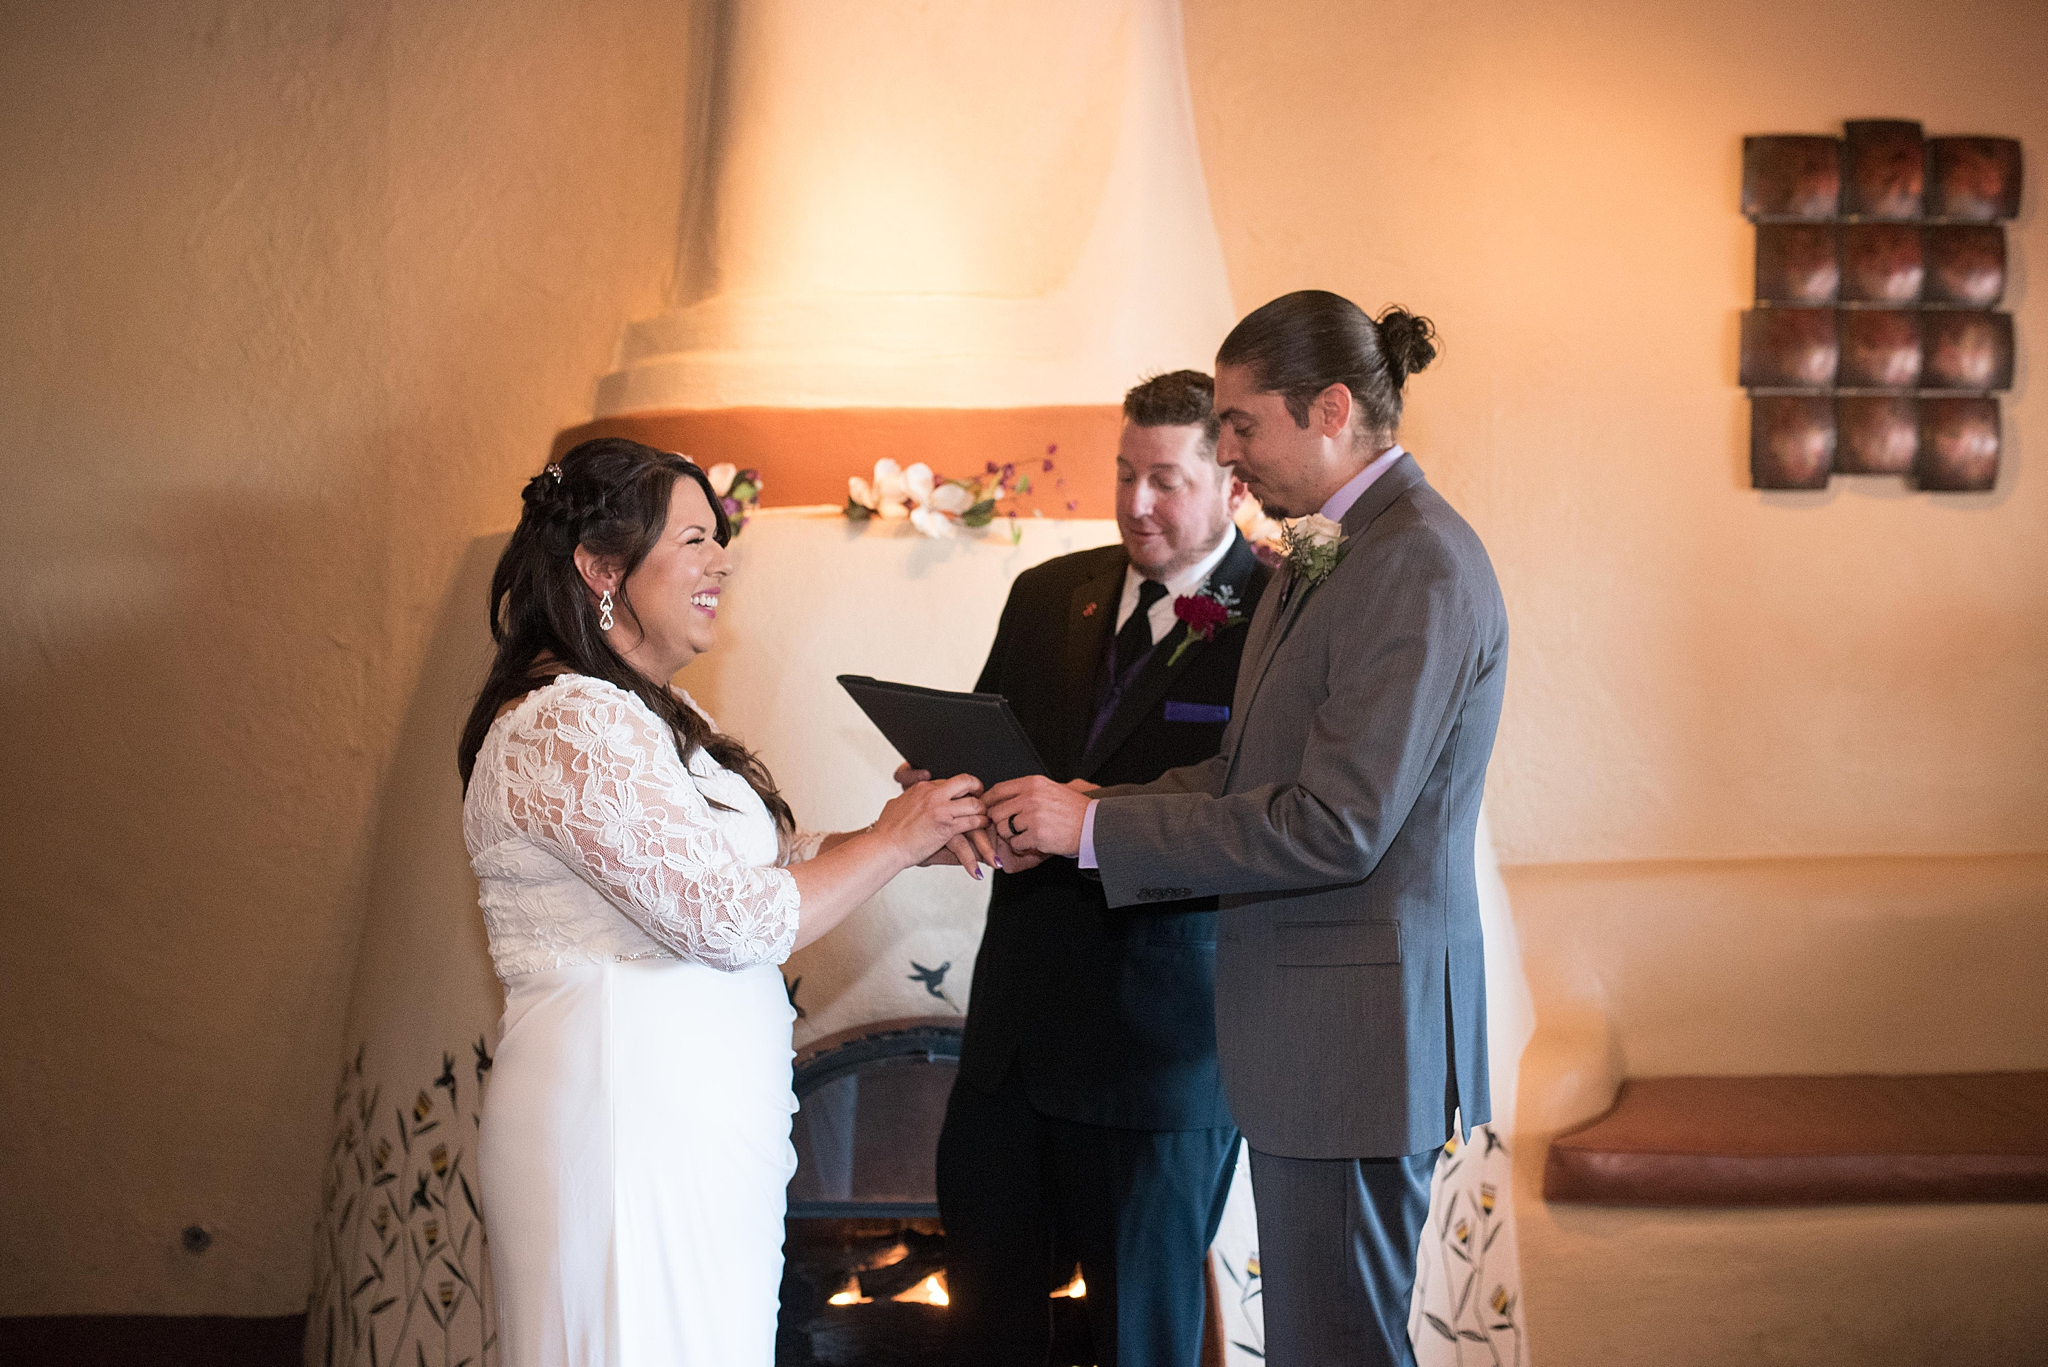 kaylakittsphotography-travis-michelle-prairie-star-albuquerque-wedding-photographer_0013.jpg